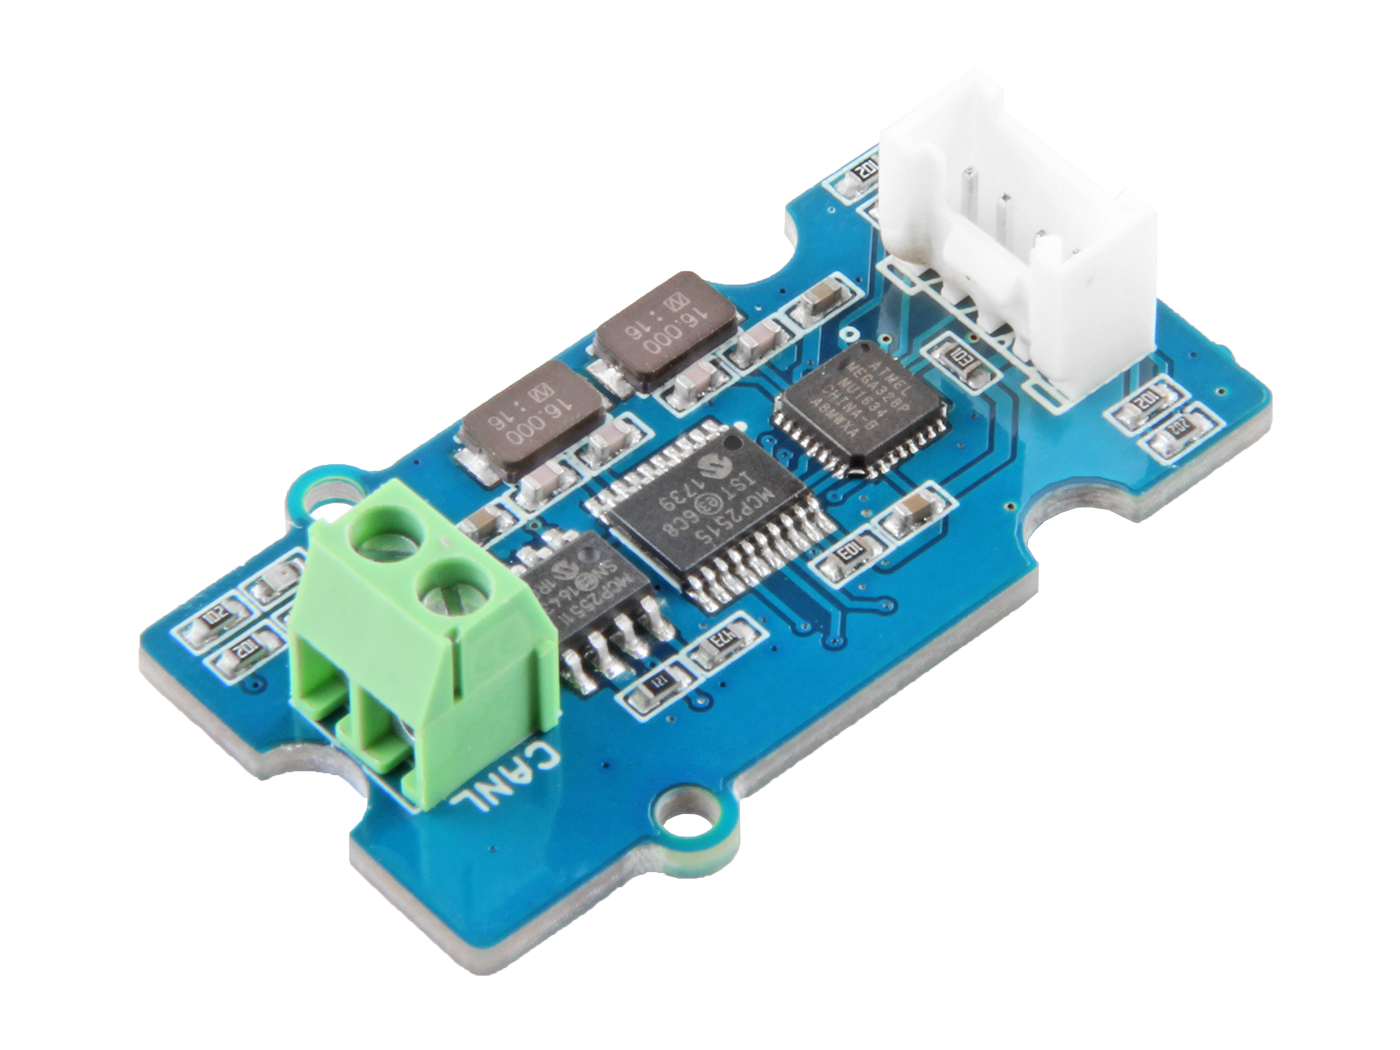 Serial CAN-Bus Module based on MCP2551 and MCP2515 - Electrical